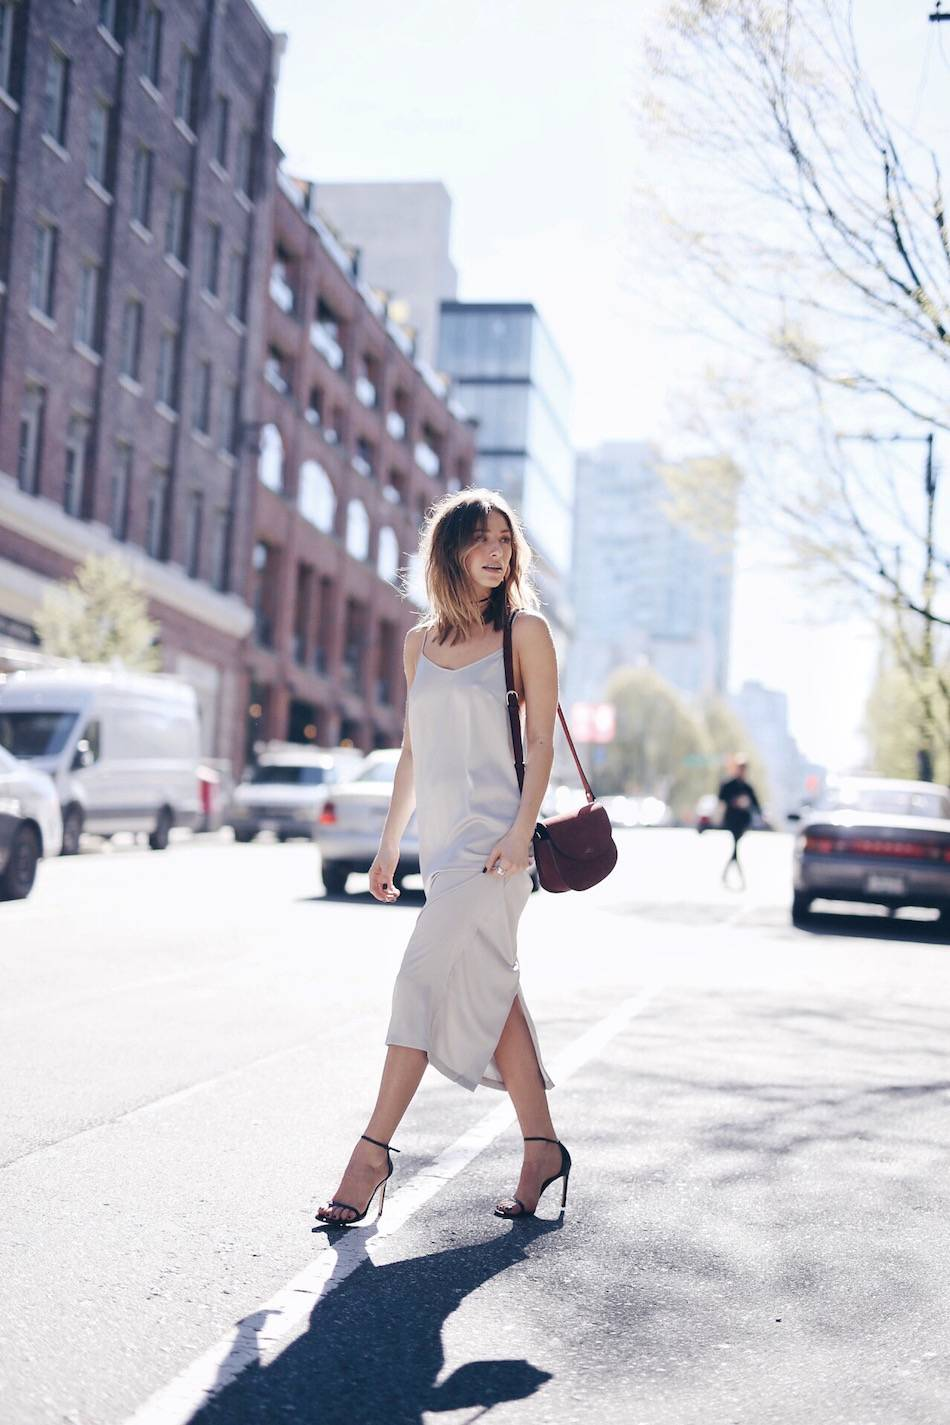 Something for the office: Jill Lansky keeps it simple with this midi length slip dress. Slip Dress/Choker: Express, Heels: Stuart Weitzman, Bag: A.P.C